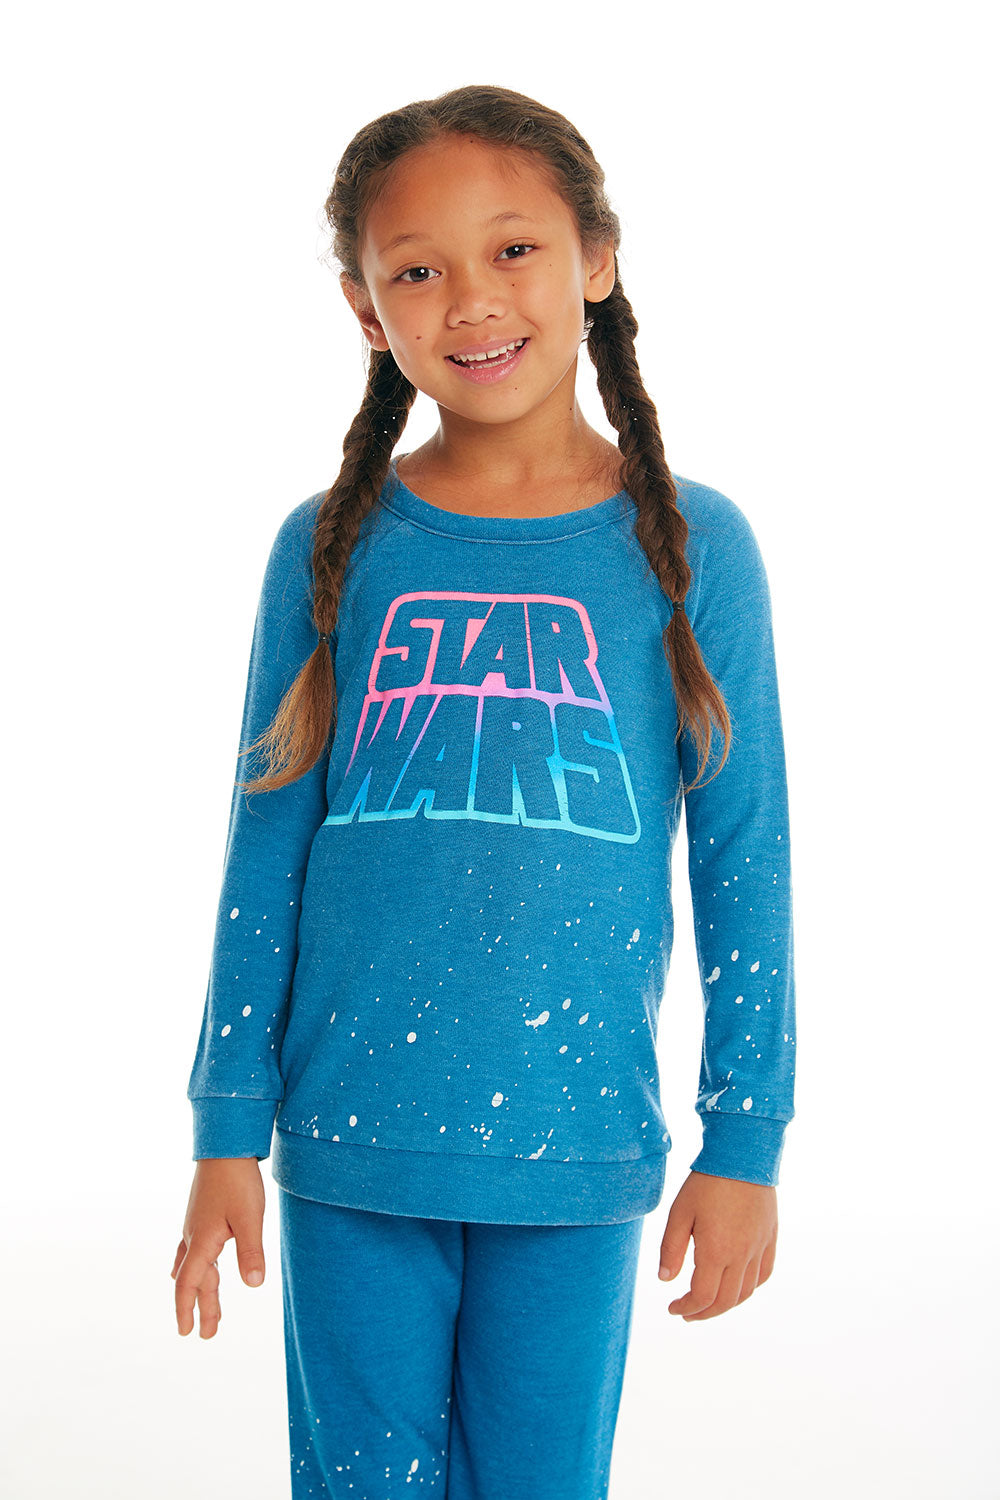 Star Wars - Neon Star Wars, GIRLS, chaserbrand.com,chaser clothing,chaser apparel,chaser los angeles